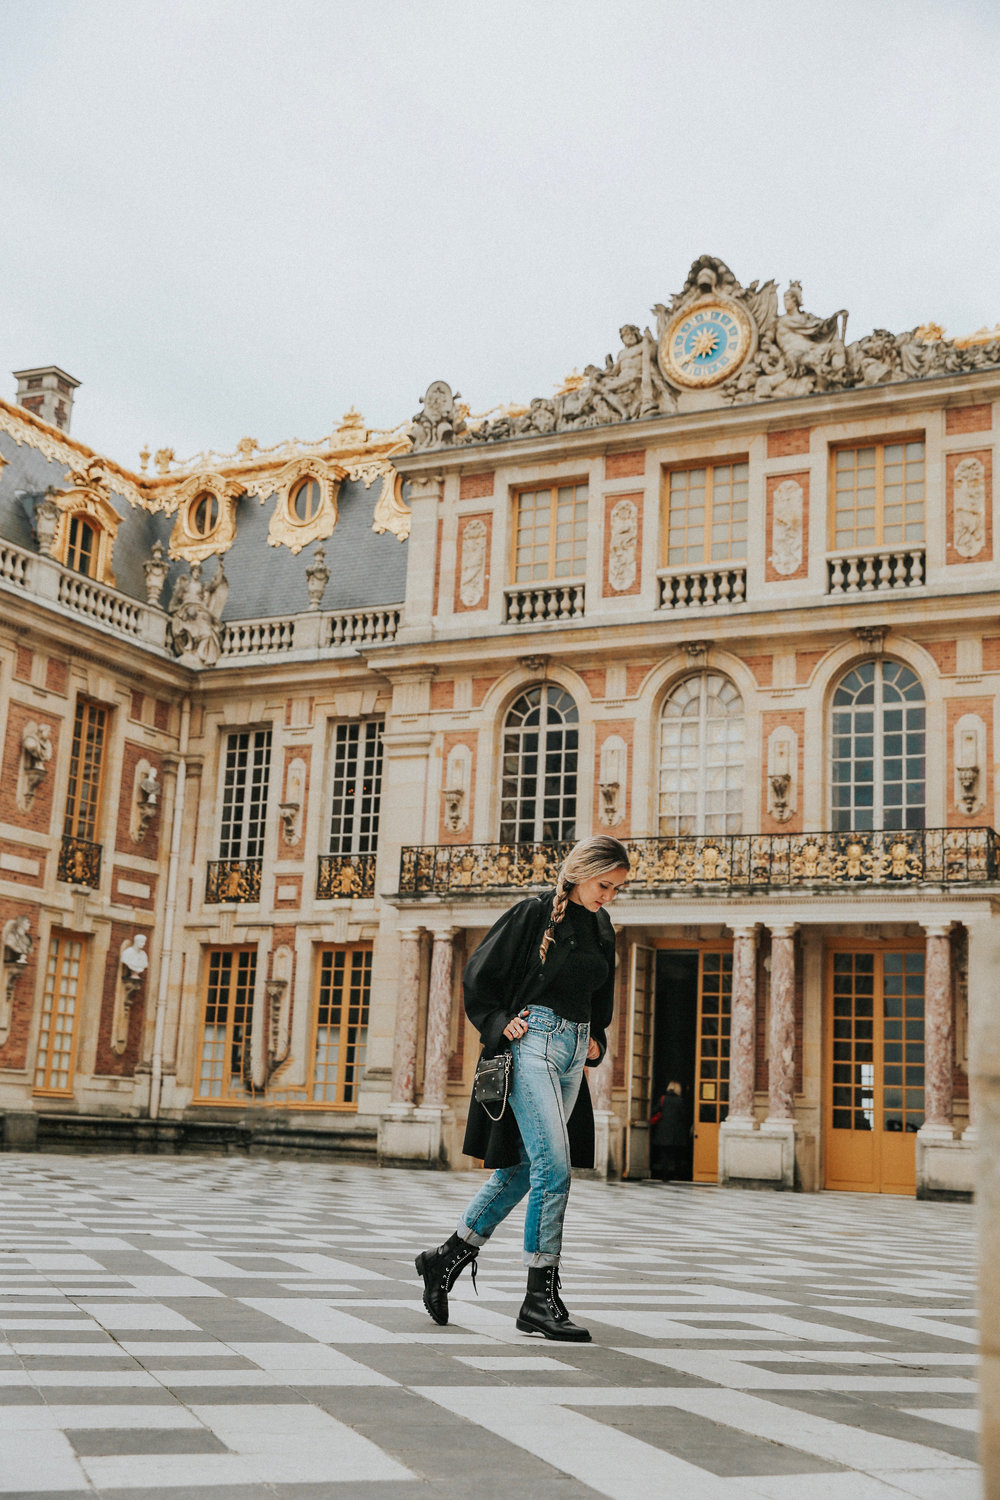 The Palace of Versailles // How to get to the Palace of Versailles // Best travel tips France // Day trips from Paris // The Style Sauce travels // travel blogger // Travel blogs